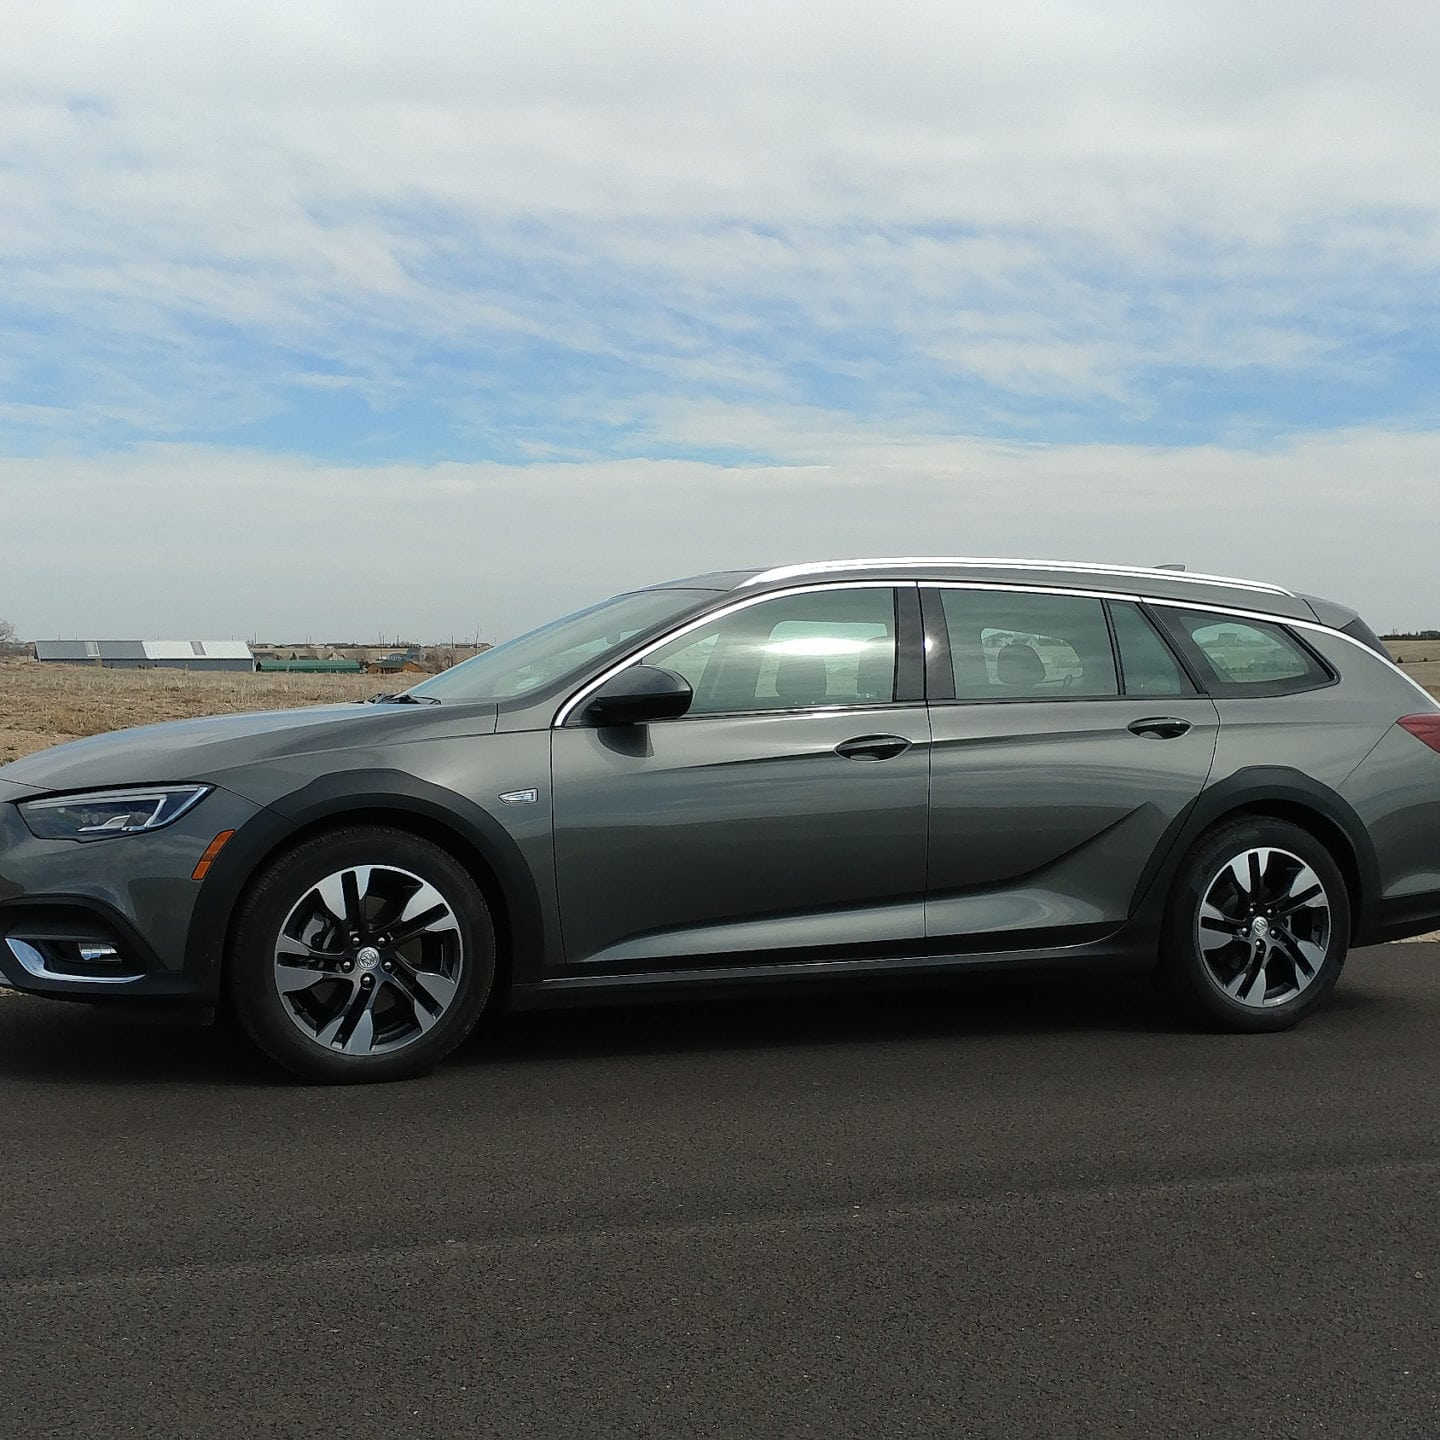 2018 Buick Regal TourX Brings Back the Buick Wagon